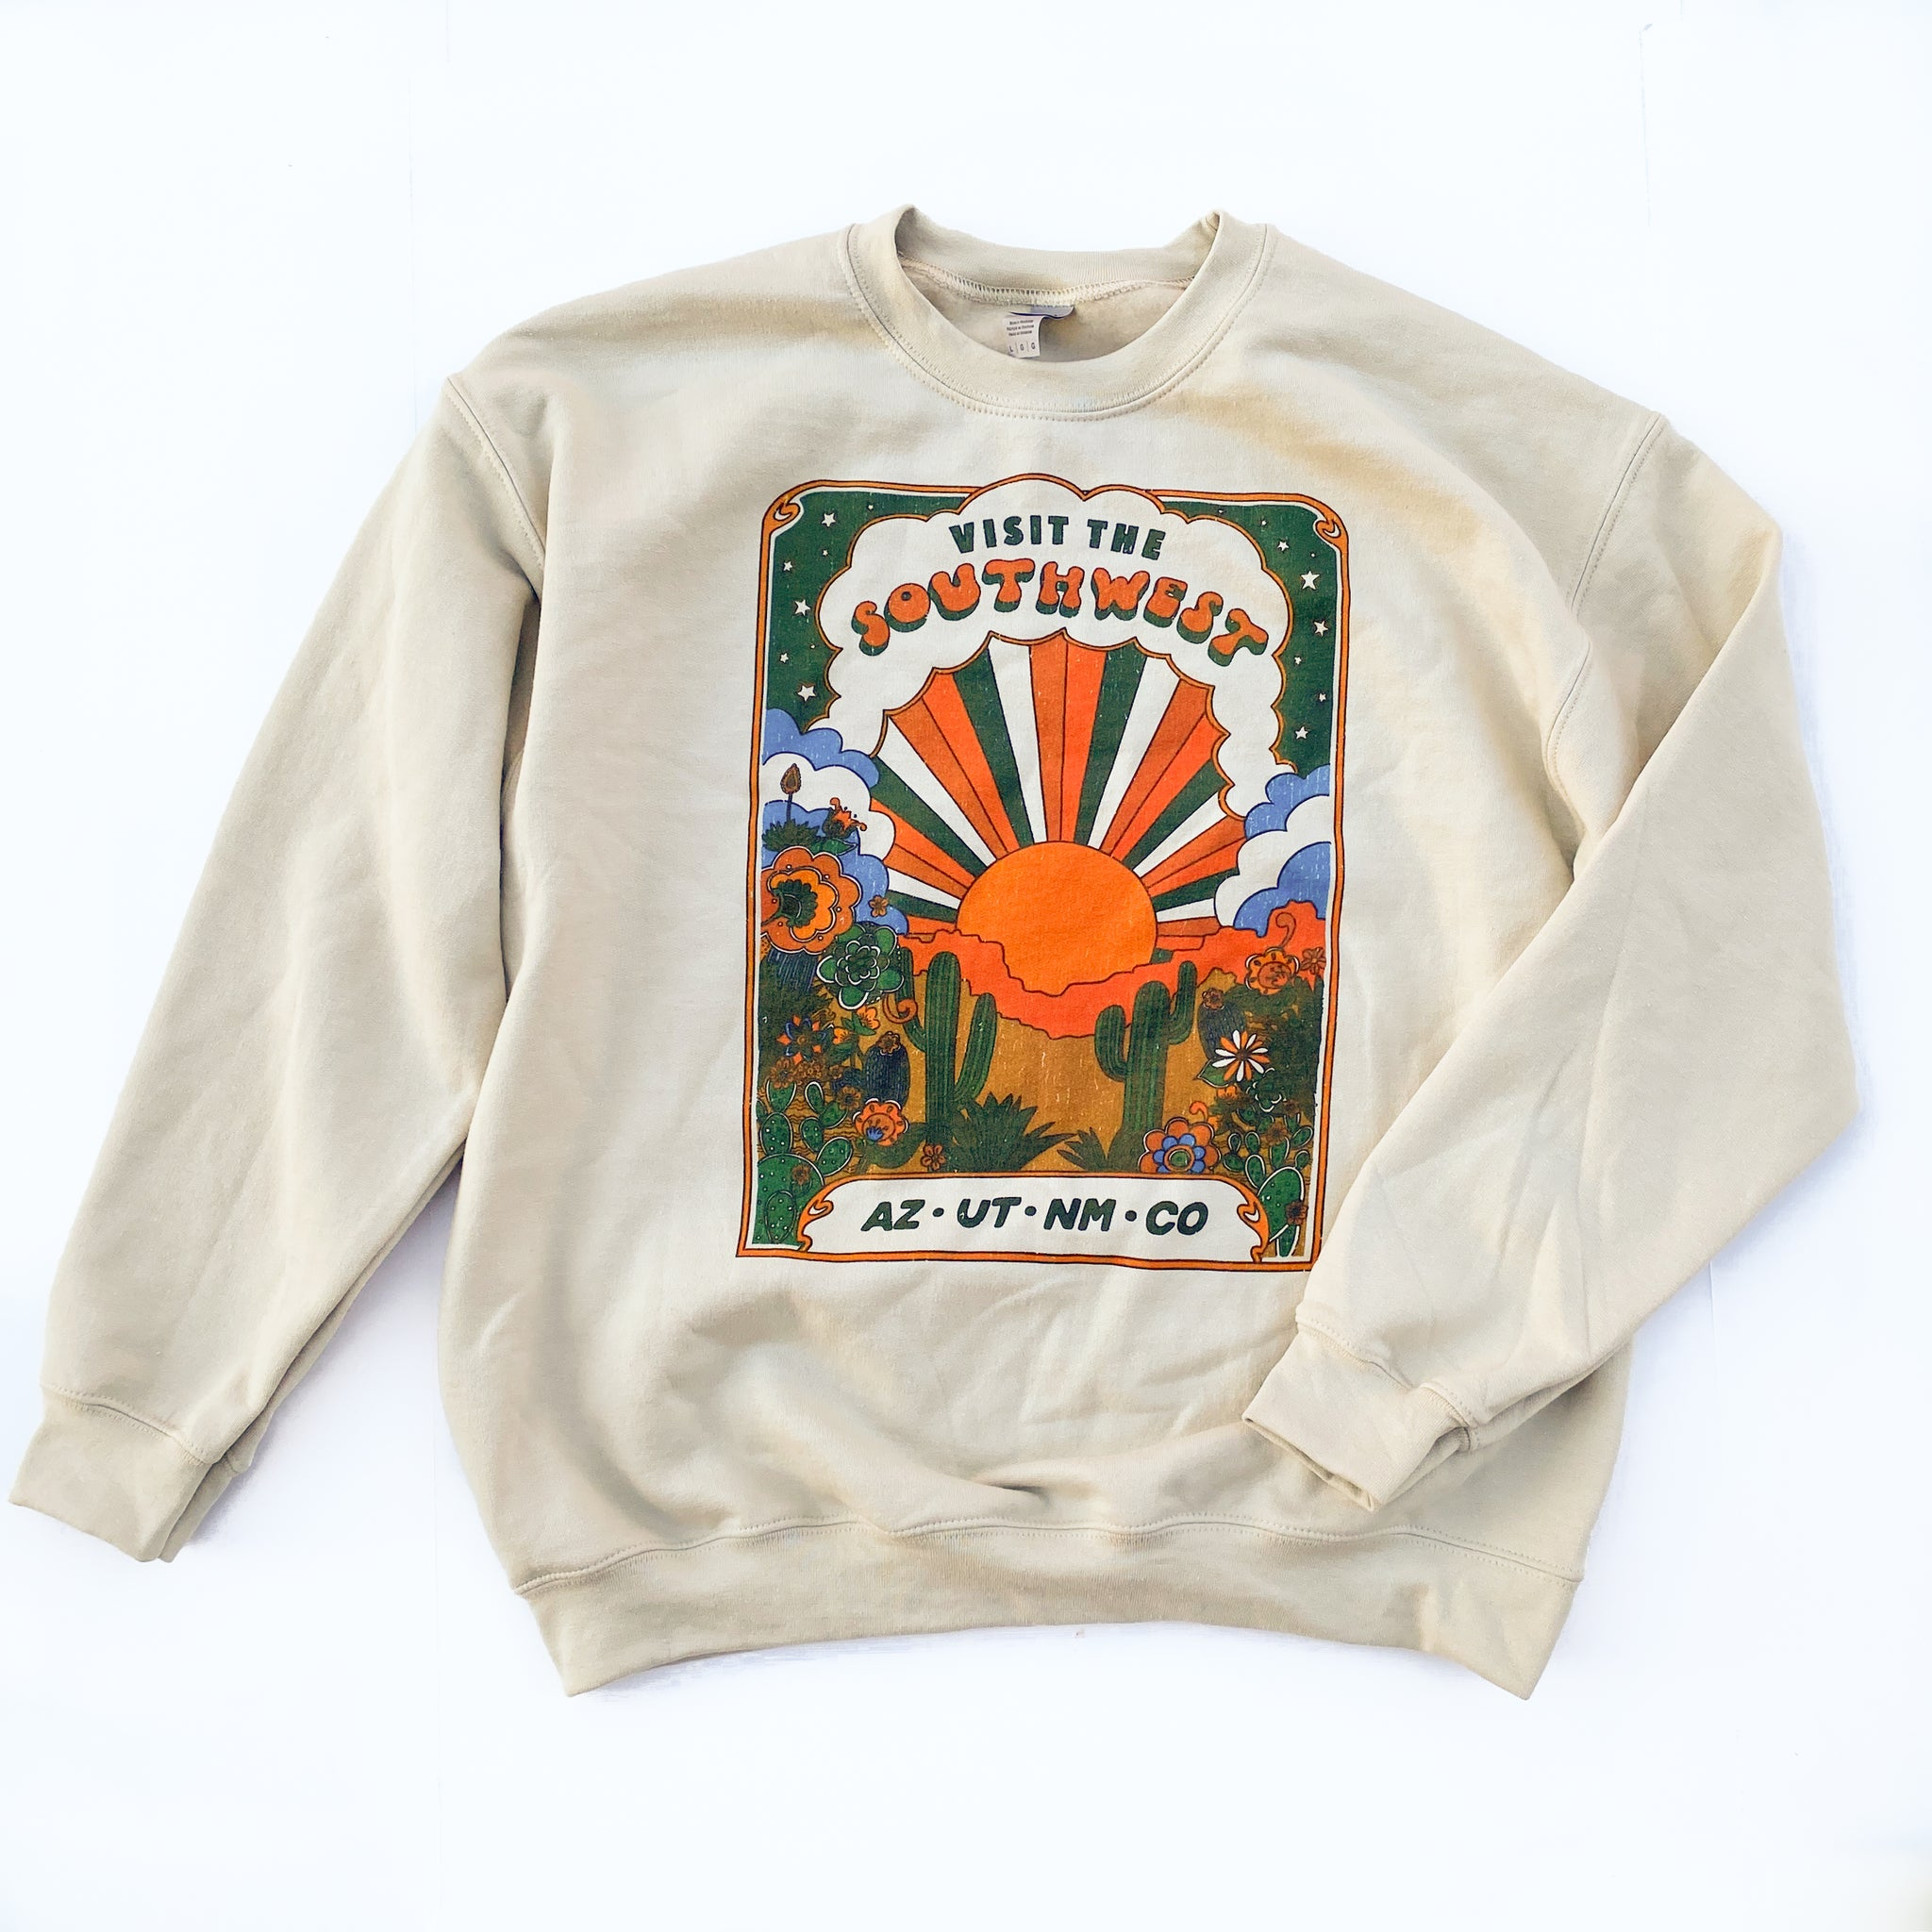 Visit the Southwest - Adult Sweater